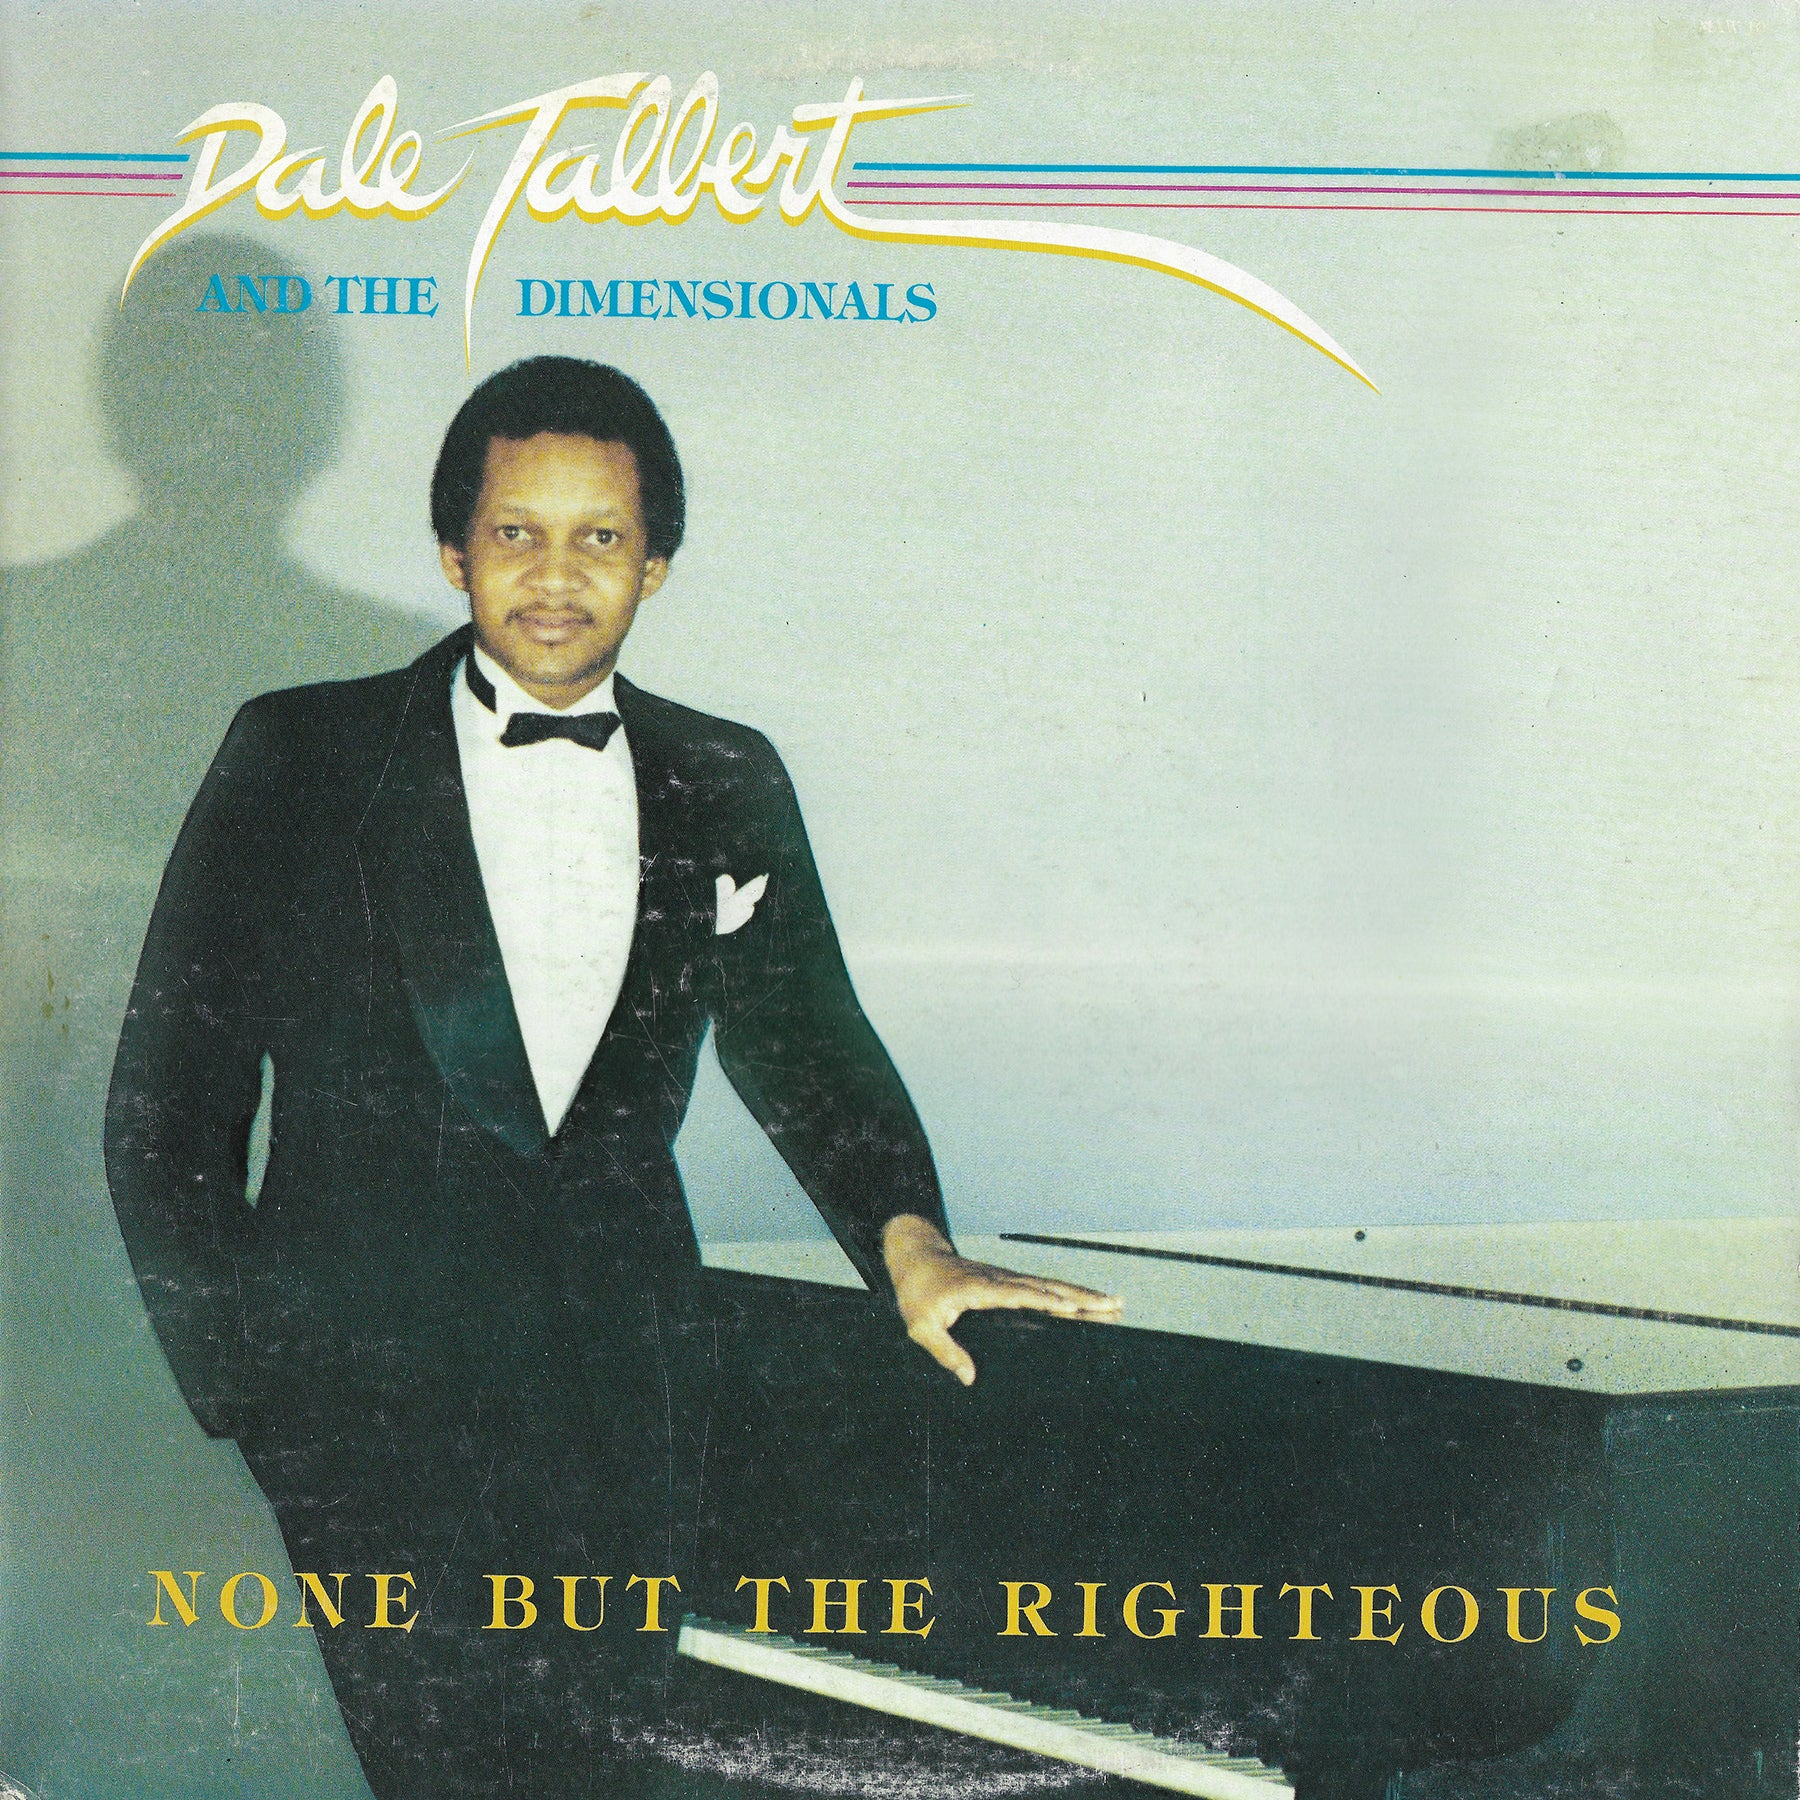 Dale Tallbert And The Dimensionals - None But The Righteous